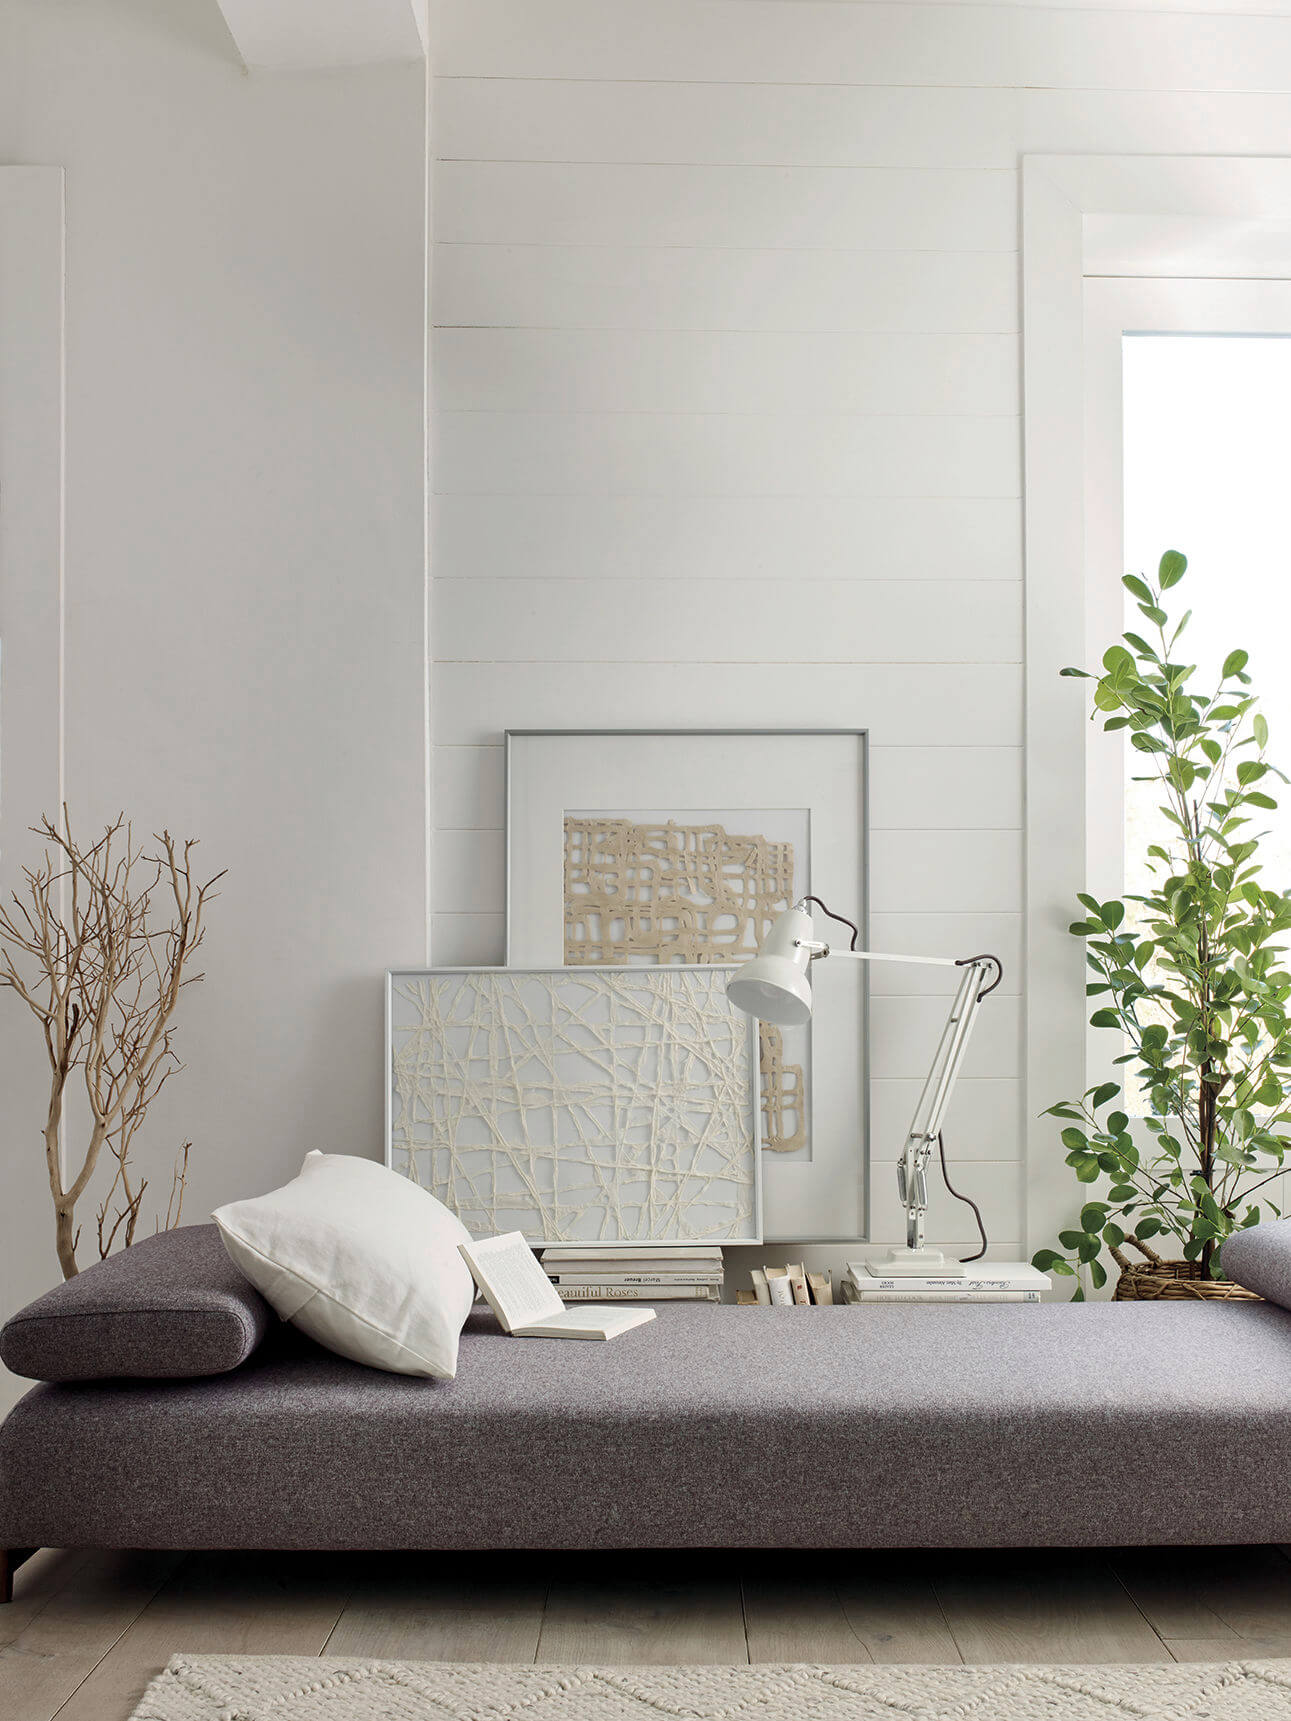 Join a special FREE Interior Design Course by interior stylist Maxine Brady welovehomeblog.com